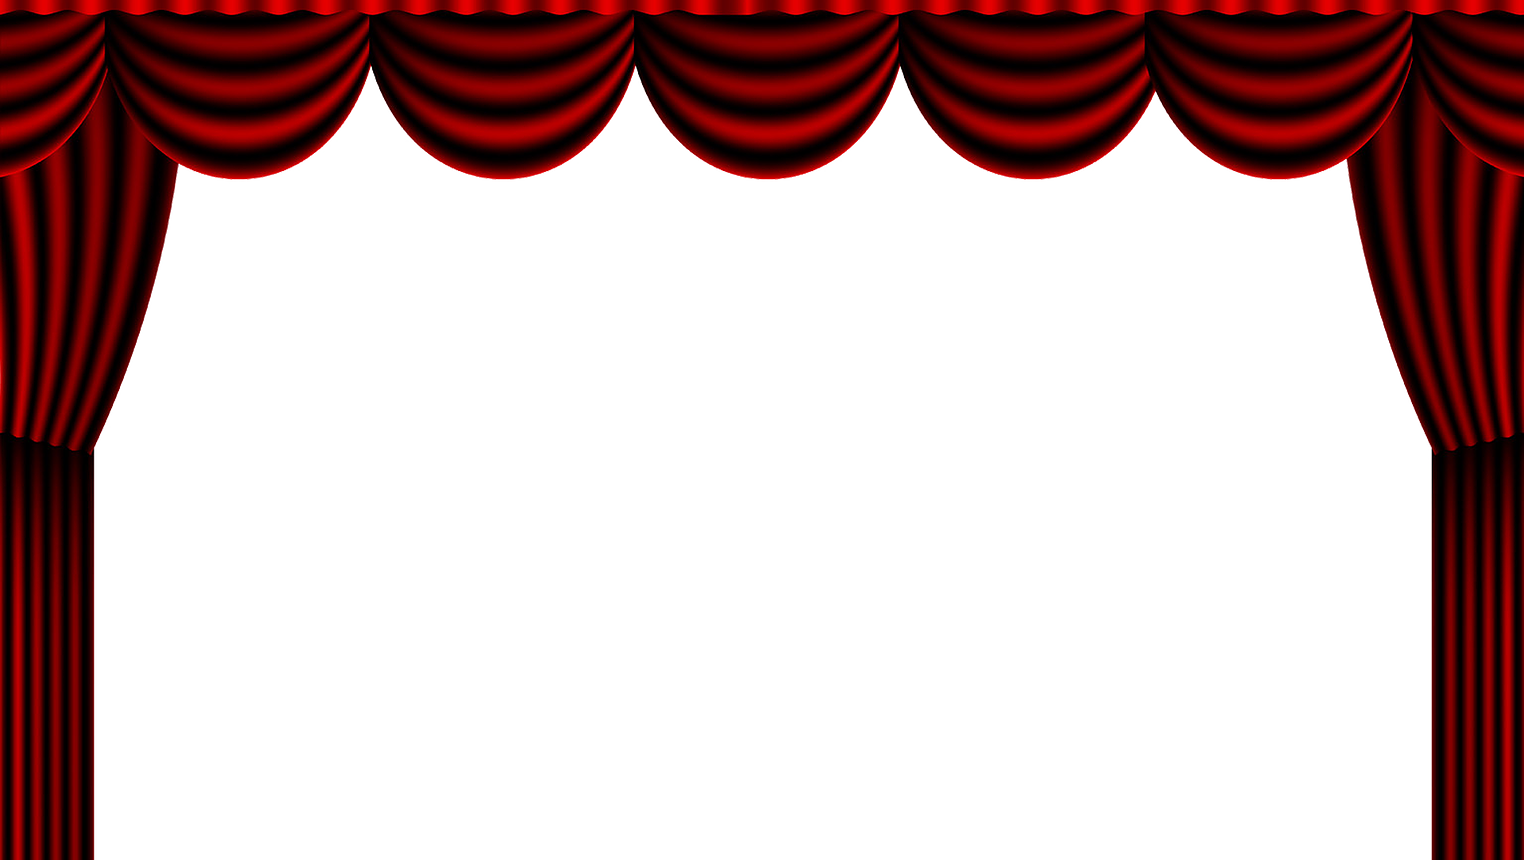 Club clipart drama play. Watheatrearts welcome to the